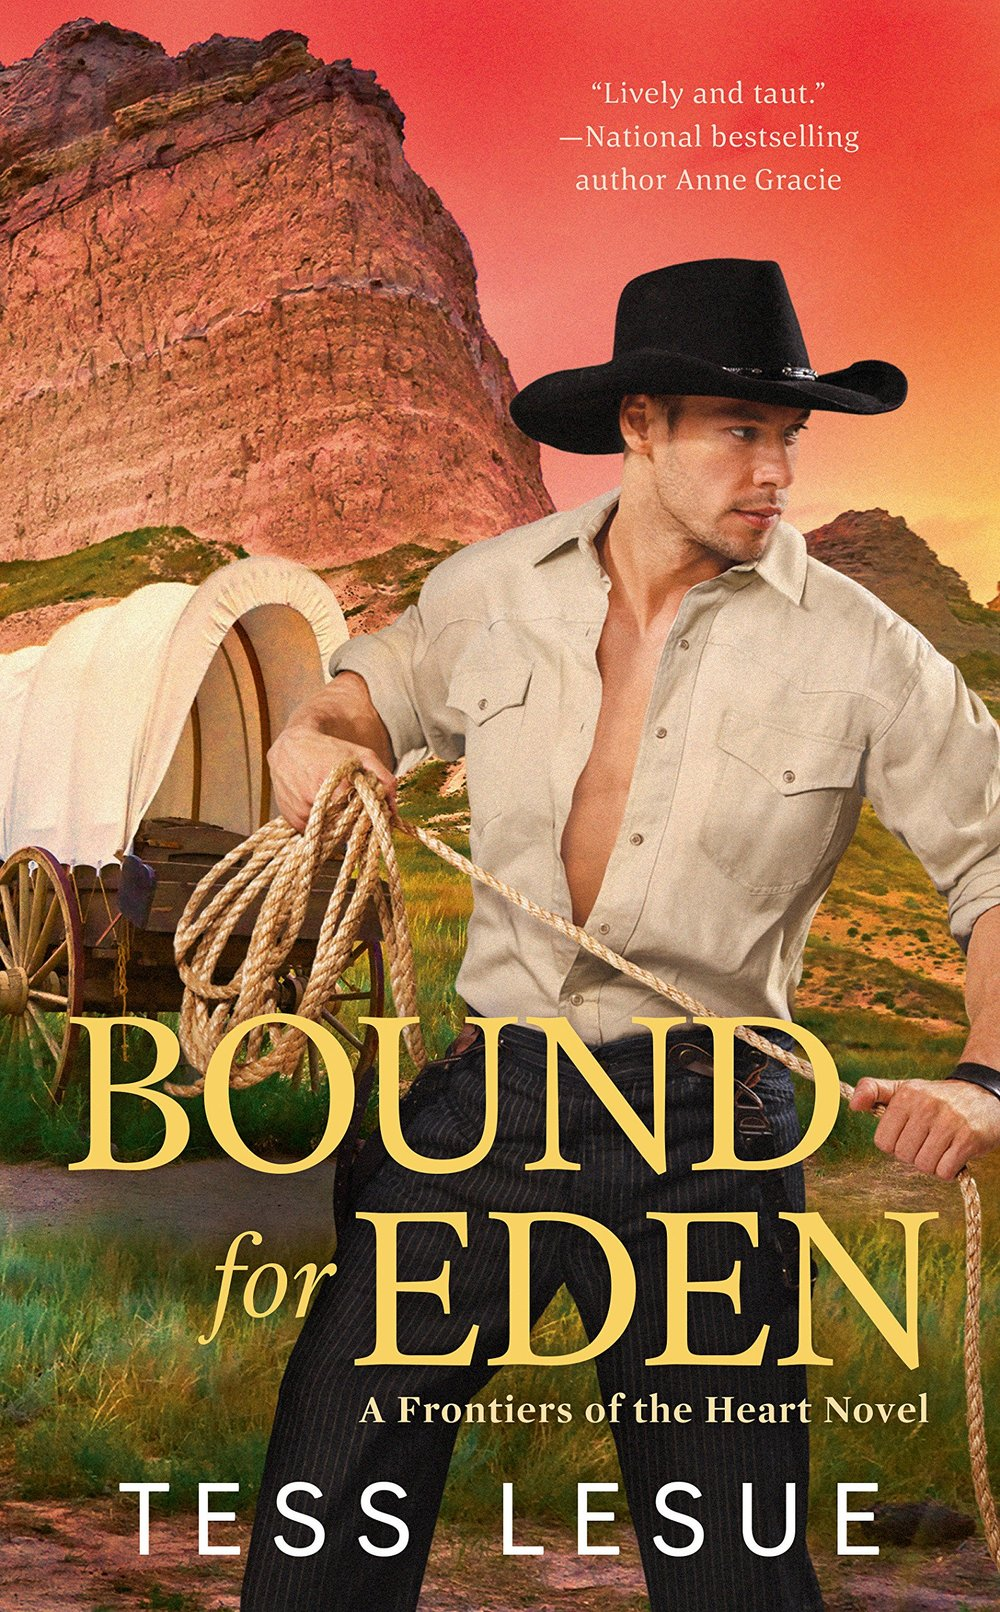 bound for eden.jpg